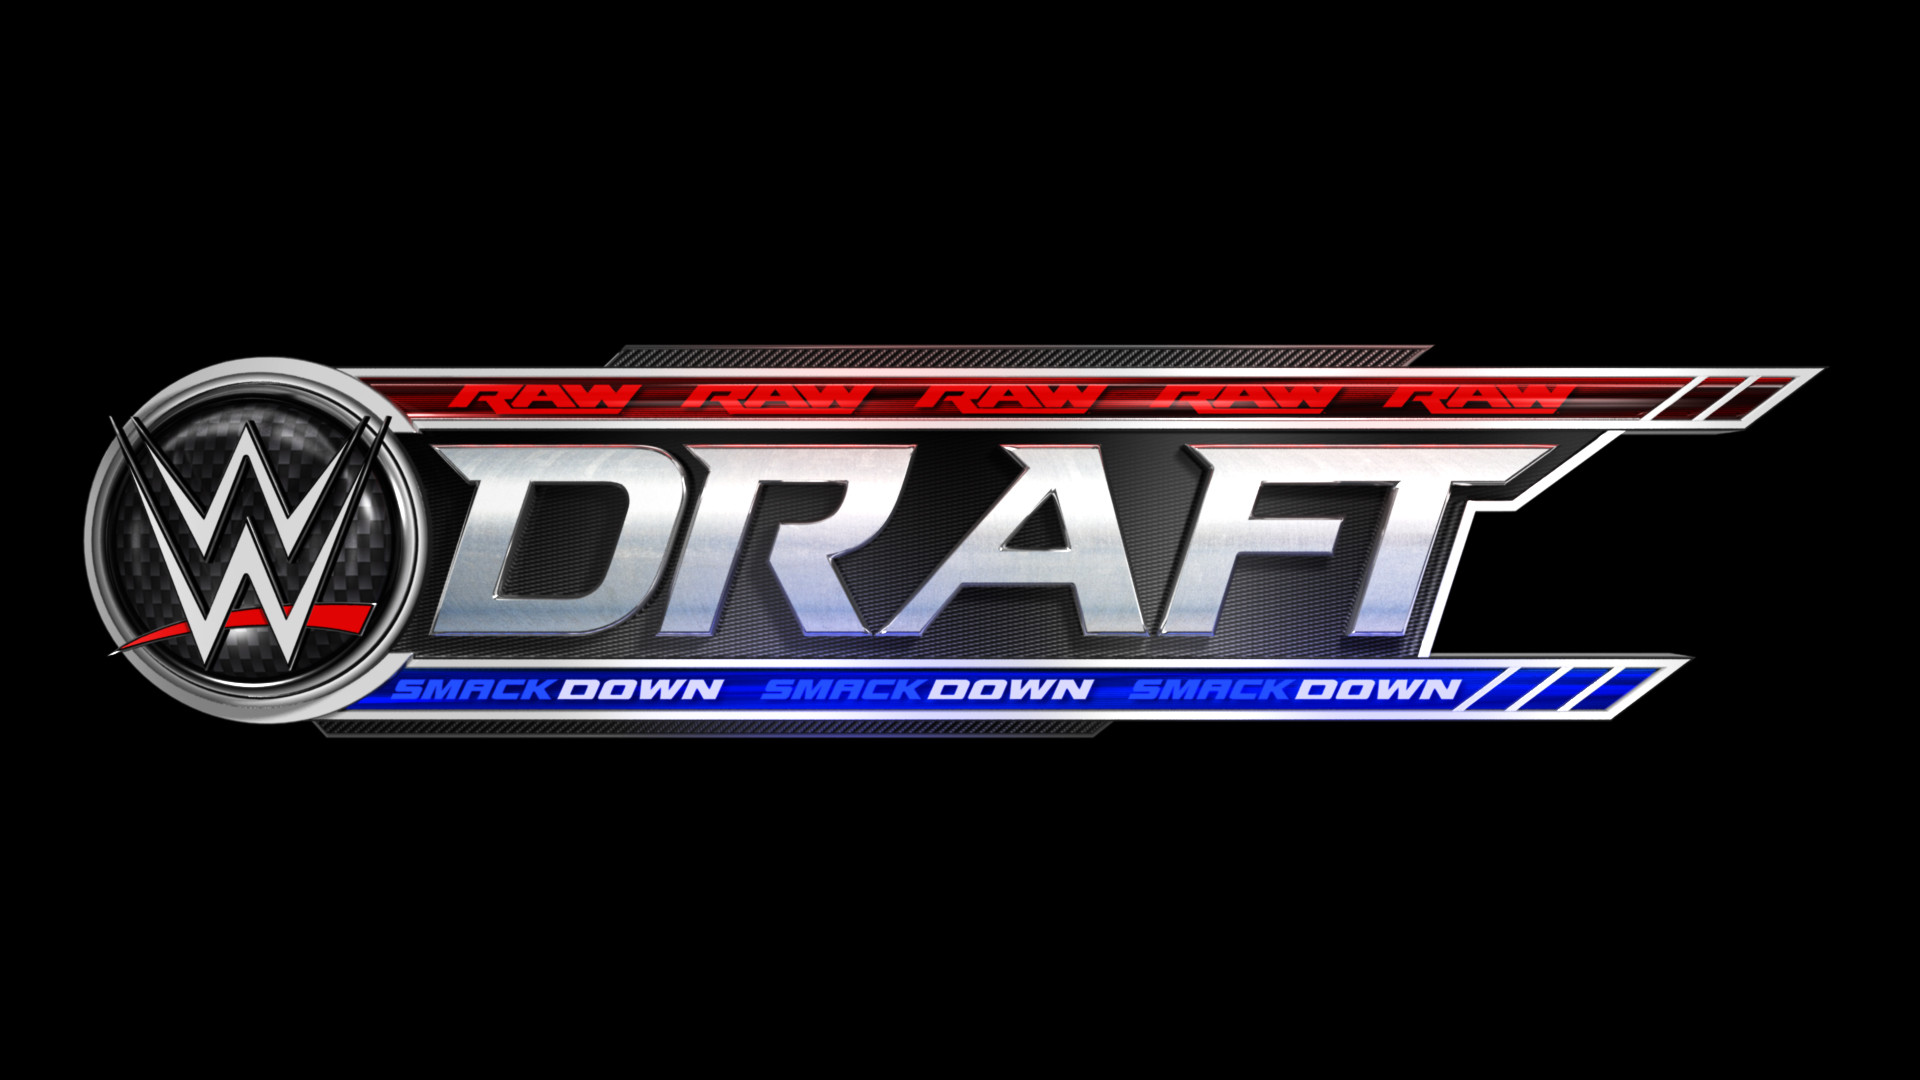 Smackdown Live WWE Draft Spoilers: What Is The Fate Of The Club / Balor Club  For A.J. Styles, Finn Balor, Luke Gallows & Karl Anderson?